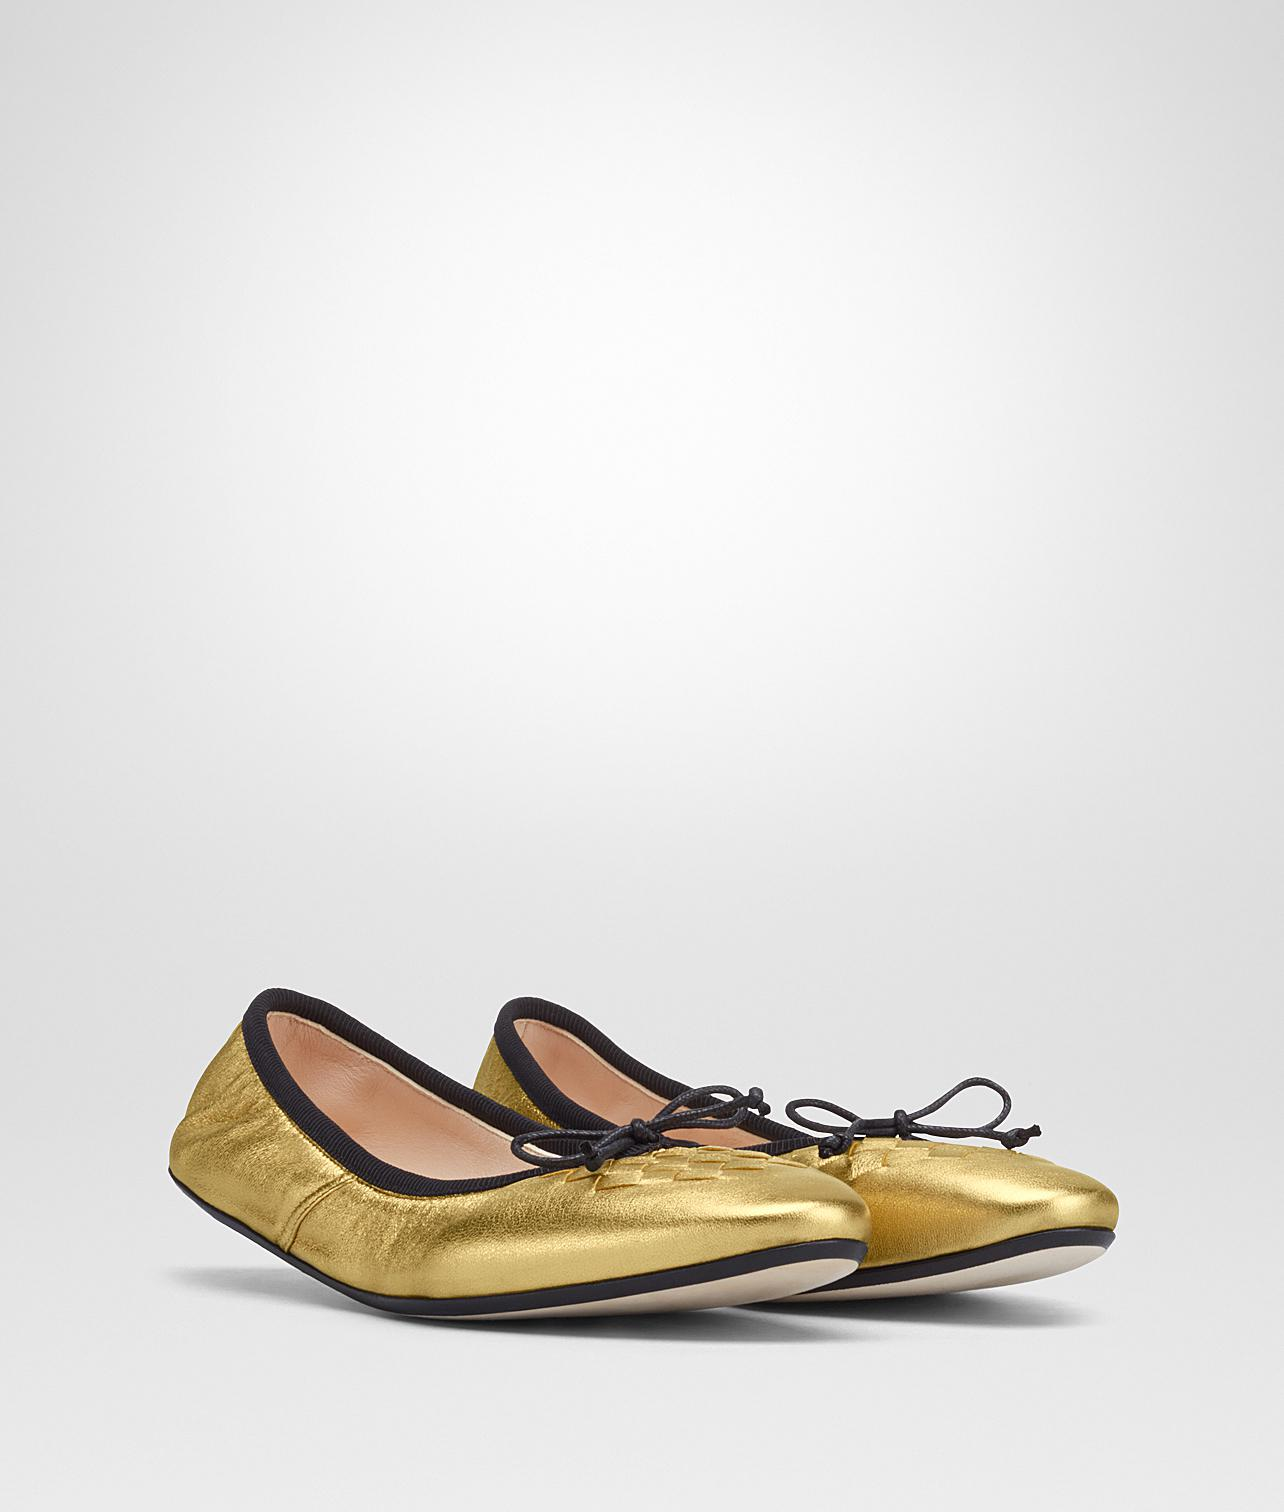 light gold Intrecciato nappa lame picnic ballerina - Metallic Bottega Veneta fXVrLu